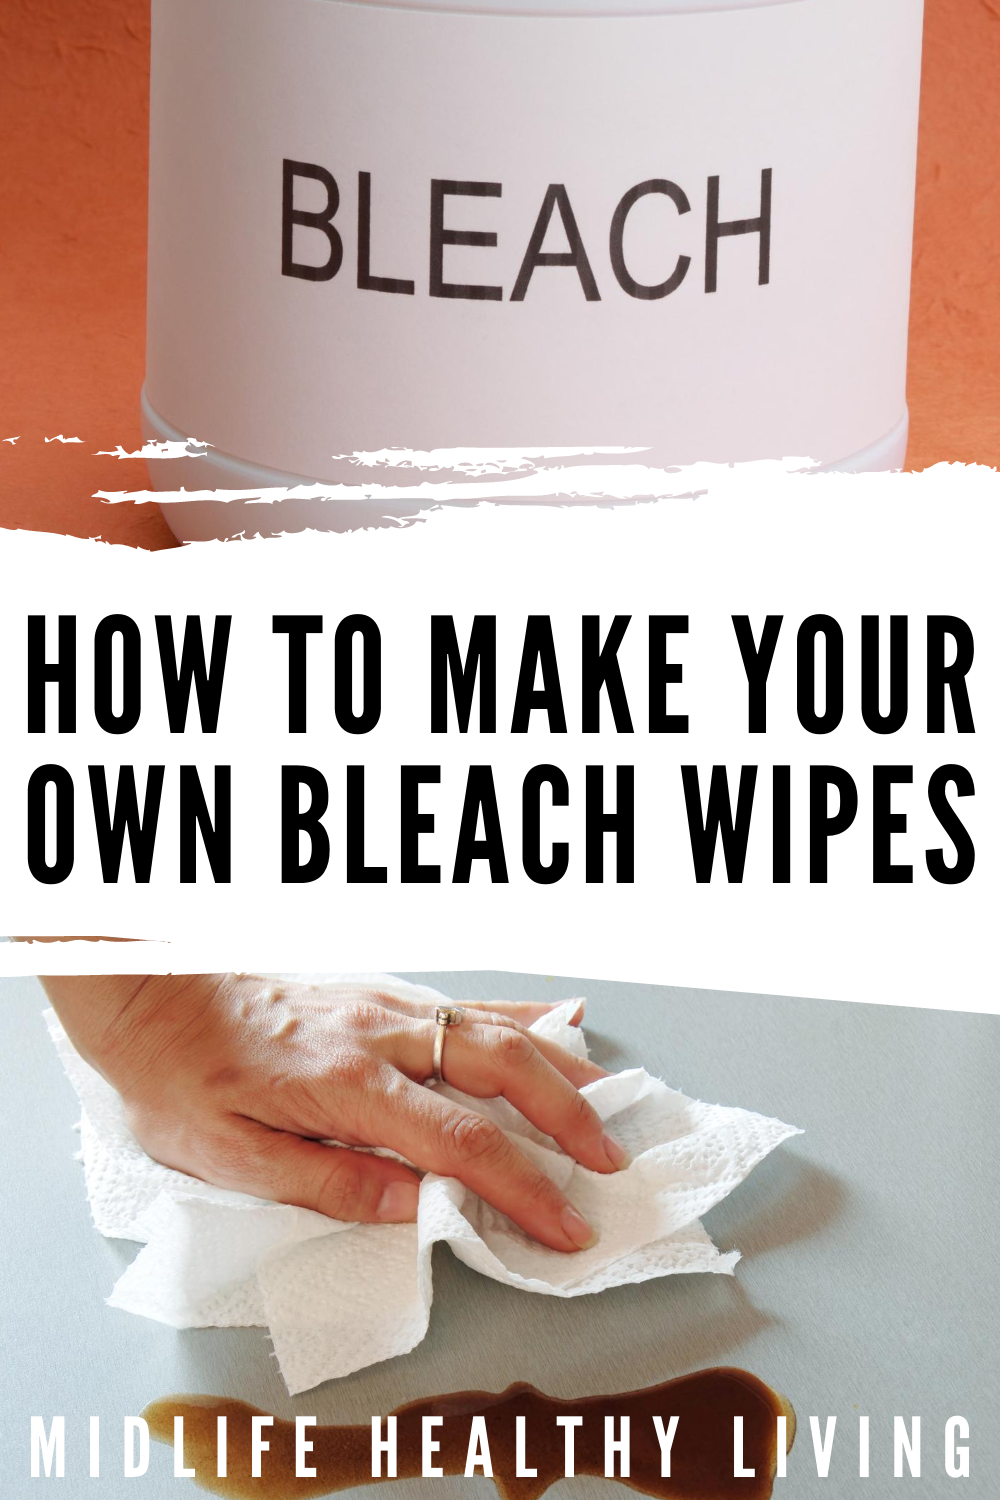 another pin showing the title of the post and some photos of bleach and the paper towels being used to clean up spills.